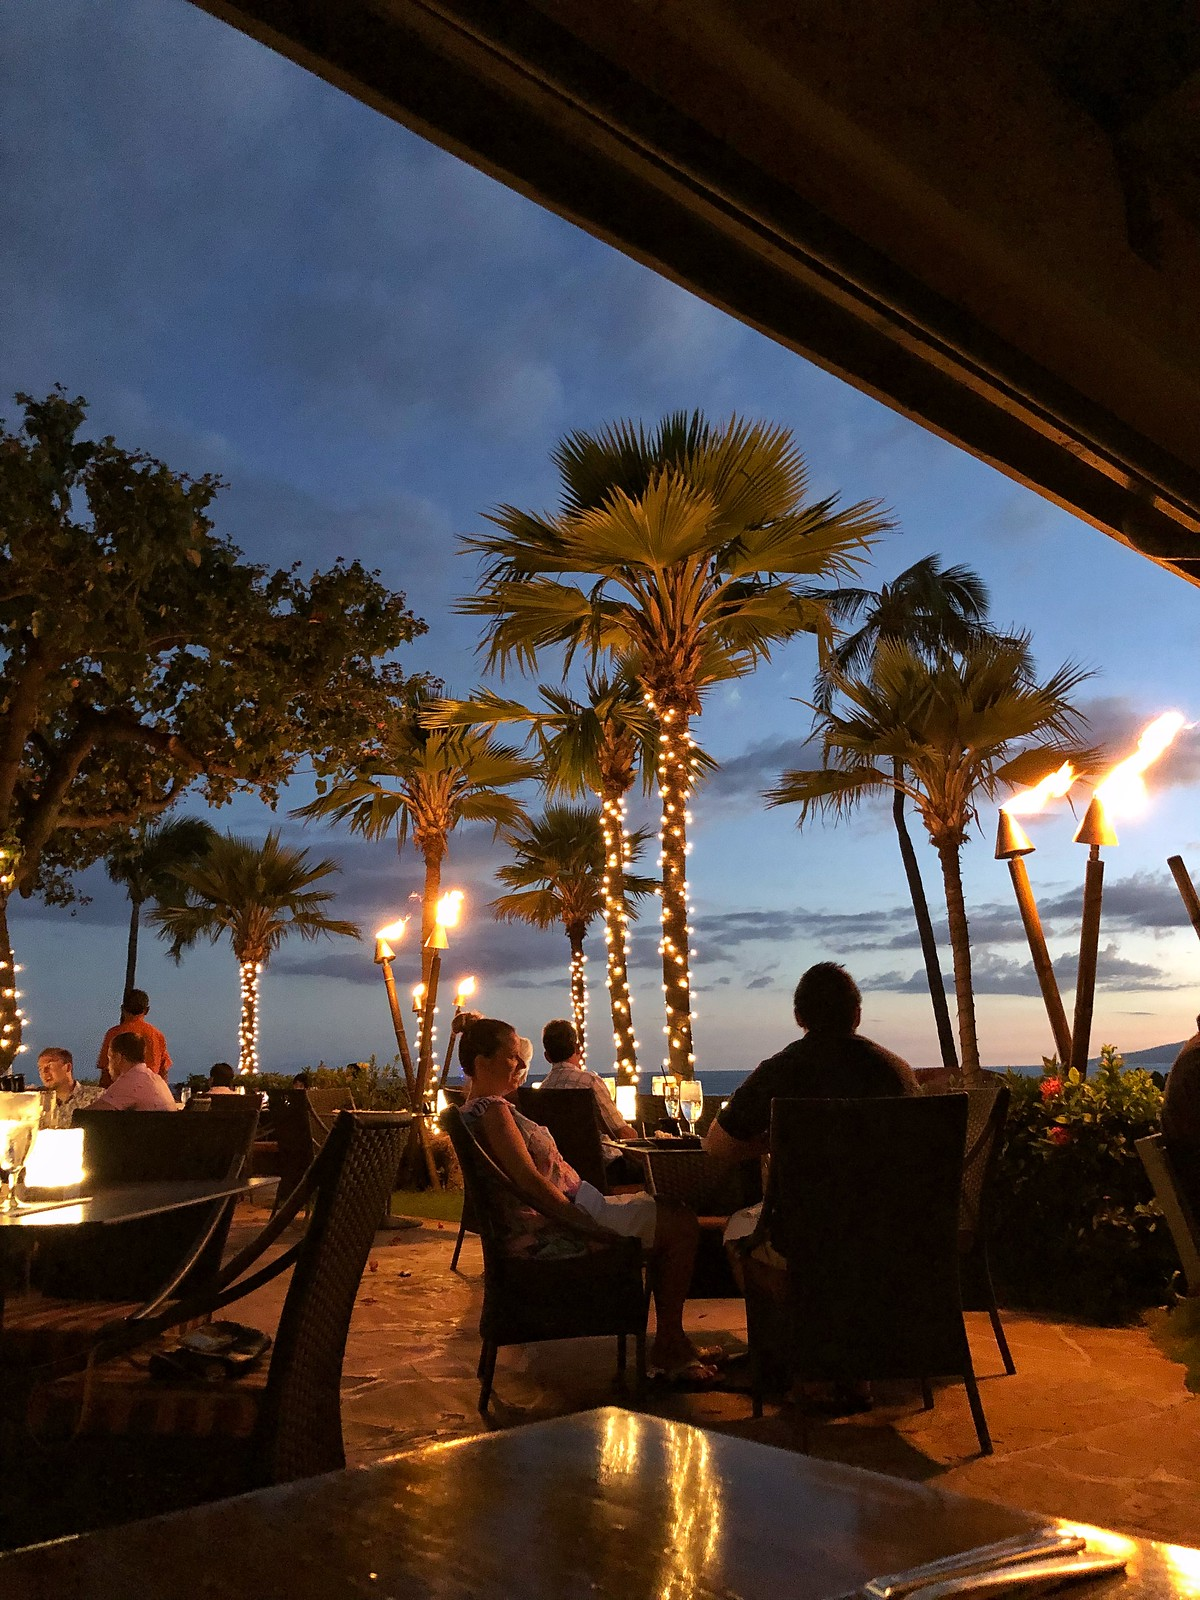 Sunset Japengo Maui Best Restaurants Reasons to Visit Maui Hawaii